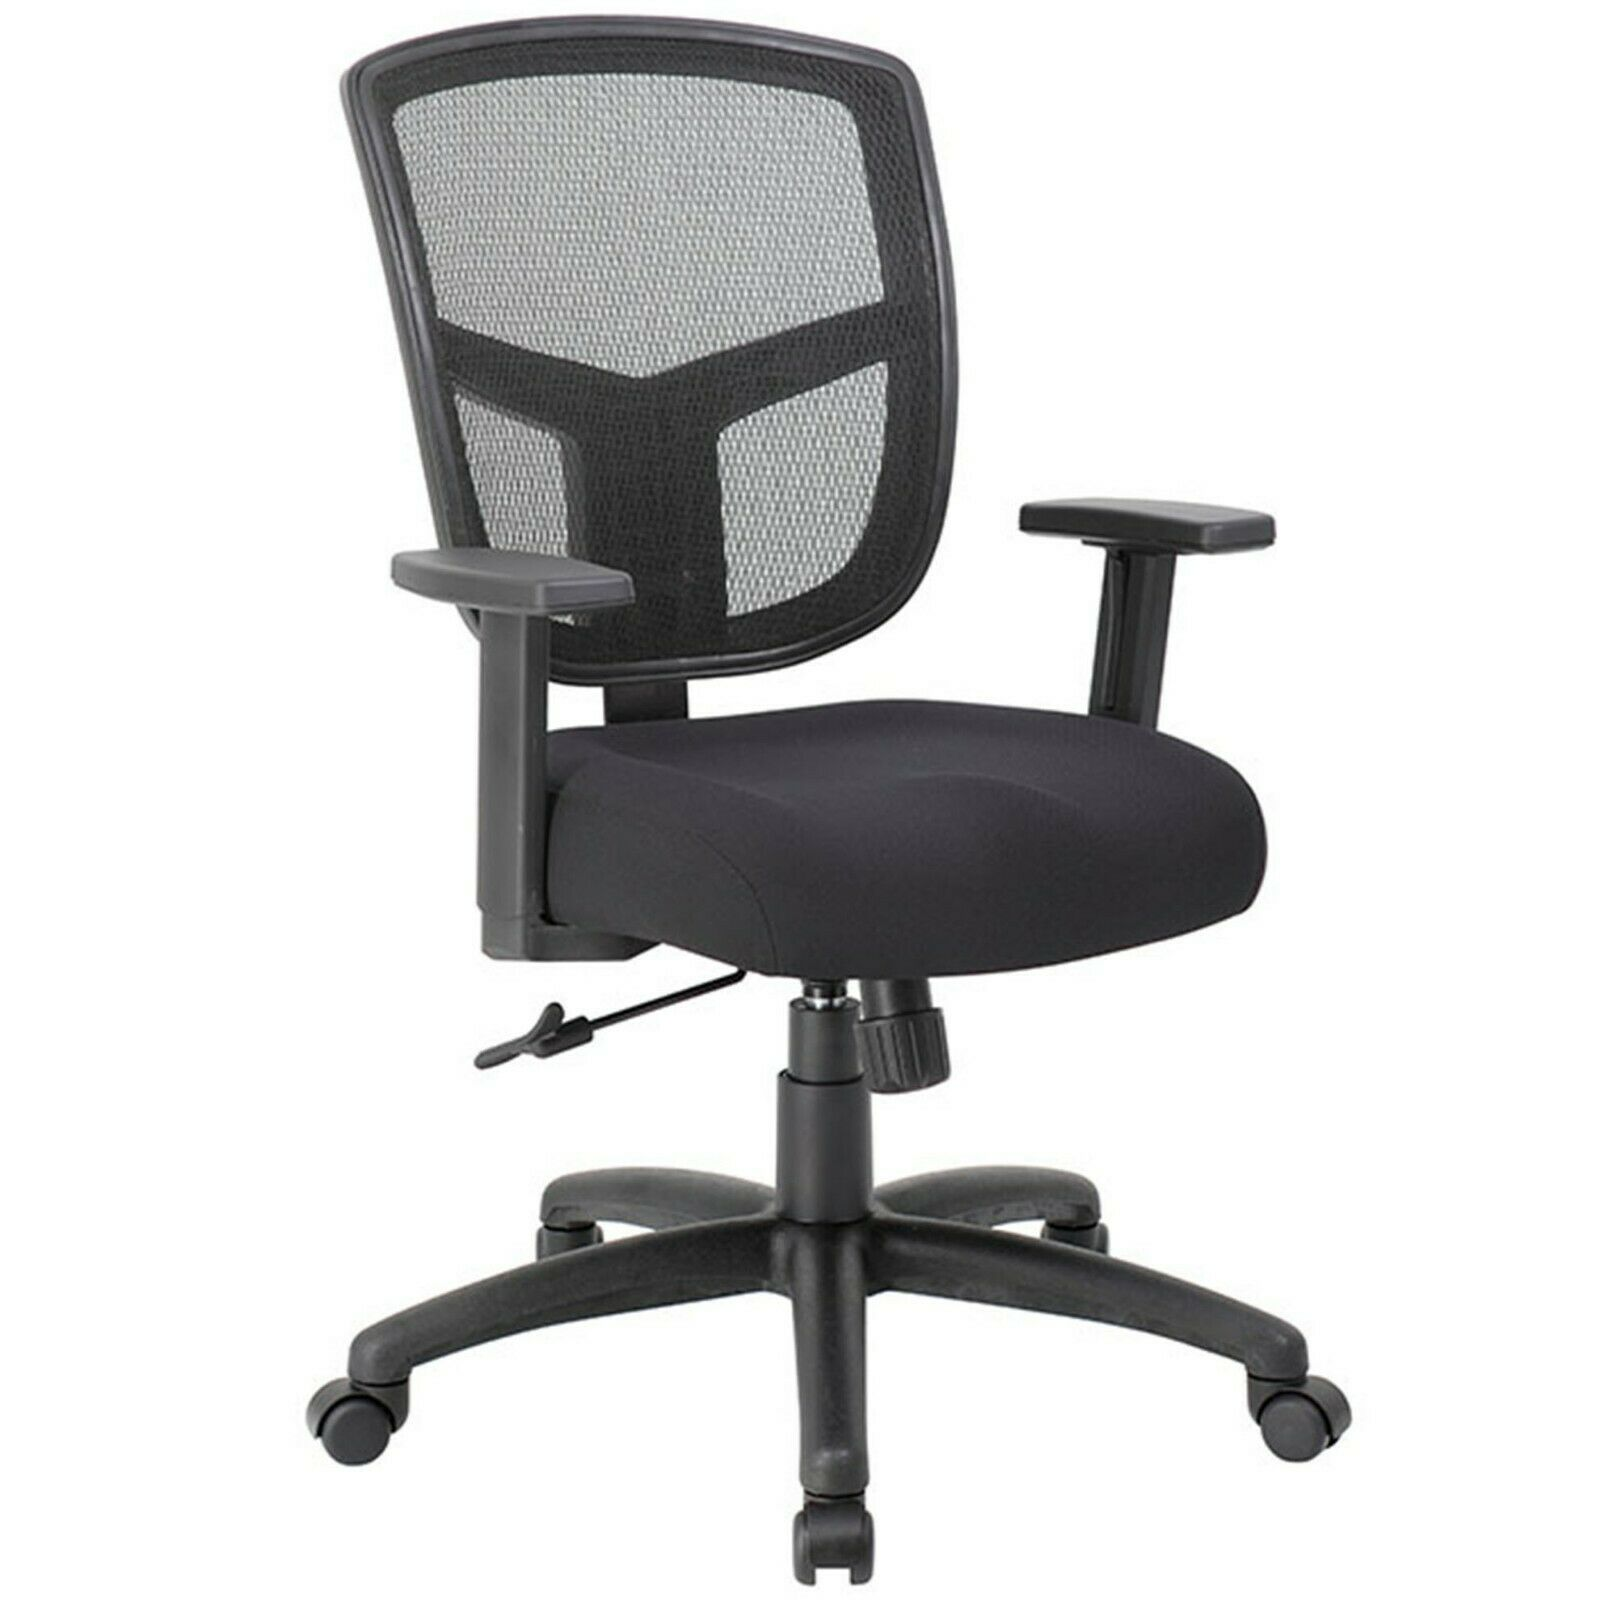 Mordern Mesh Back Chairs, Mid Back Office Chair, Conference Room Chairs